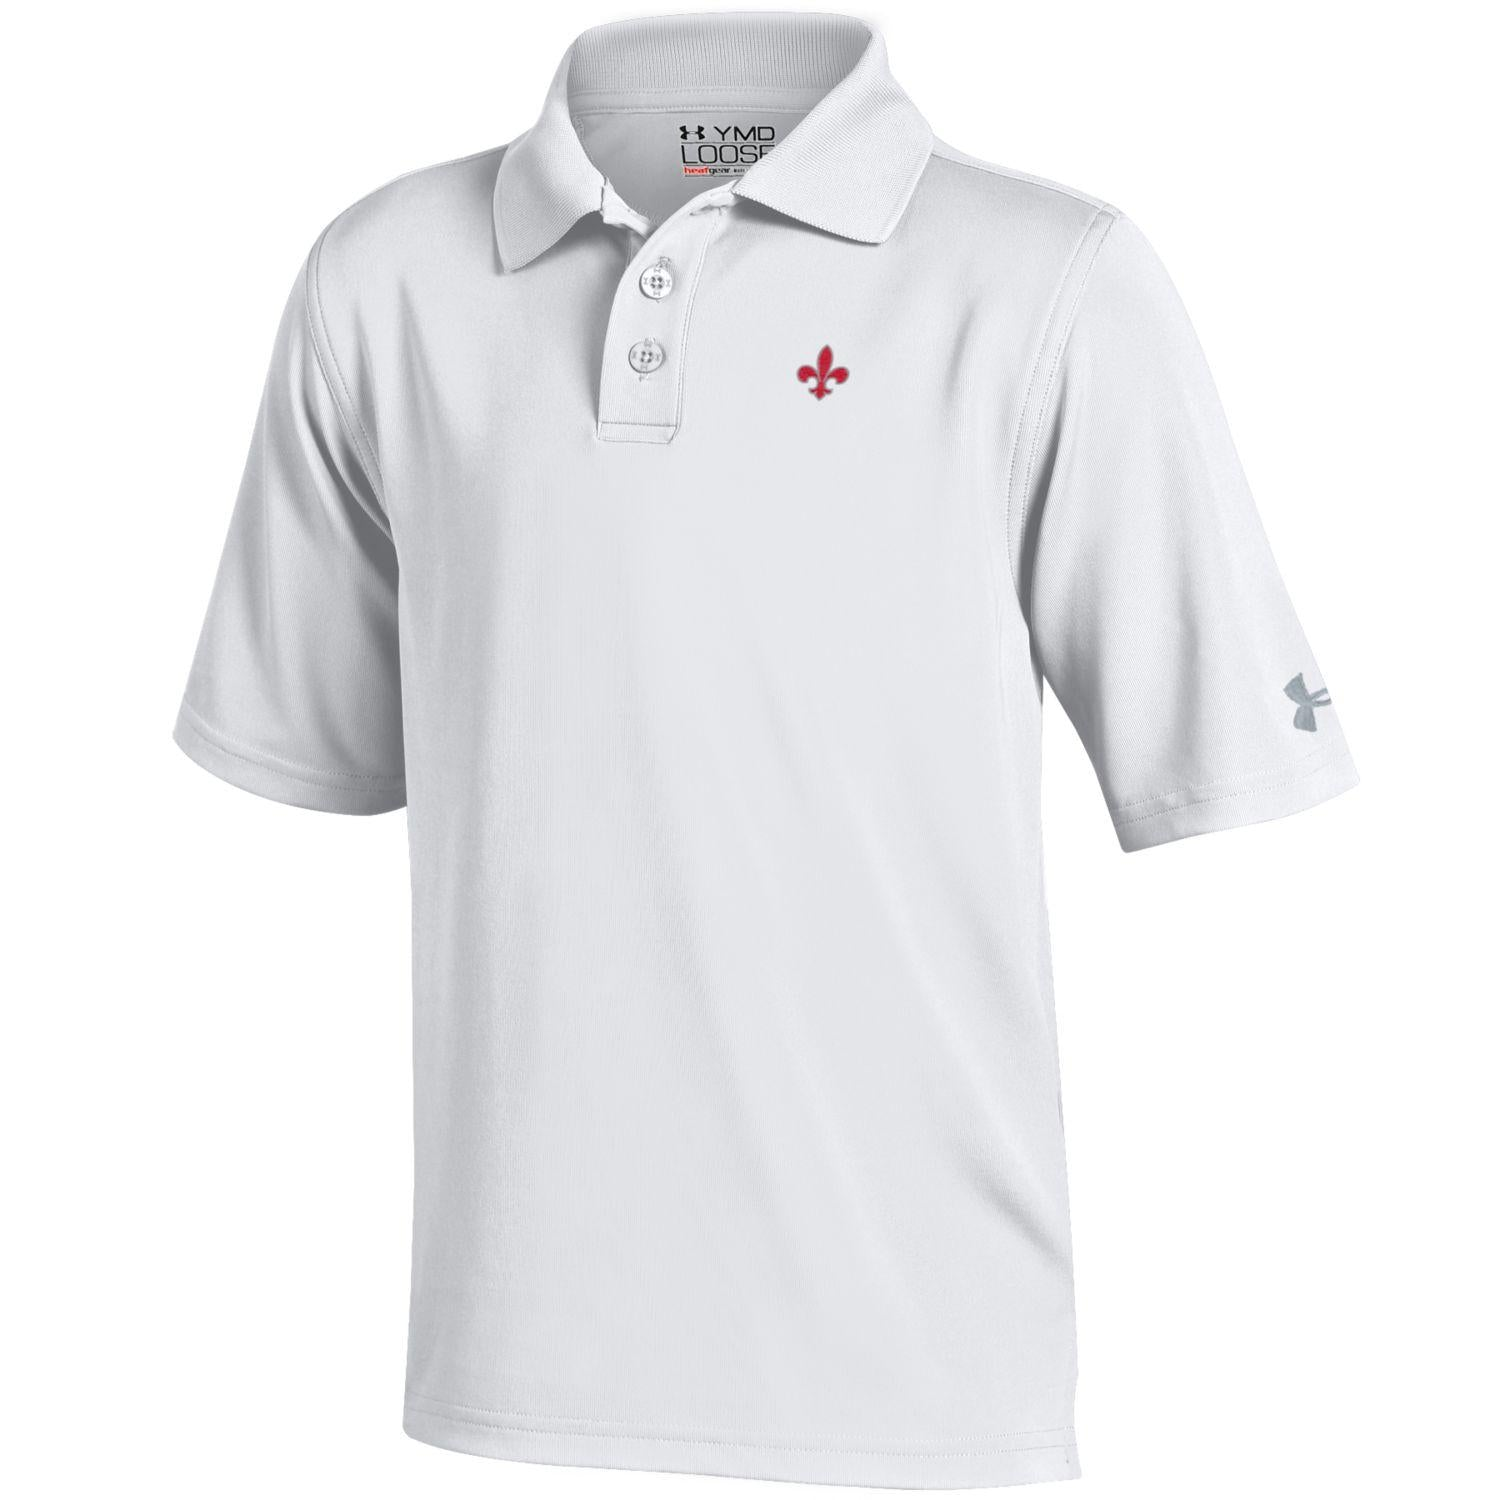 Youth Short Sleeve Polo